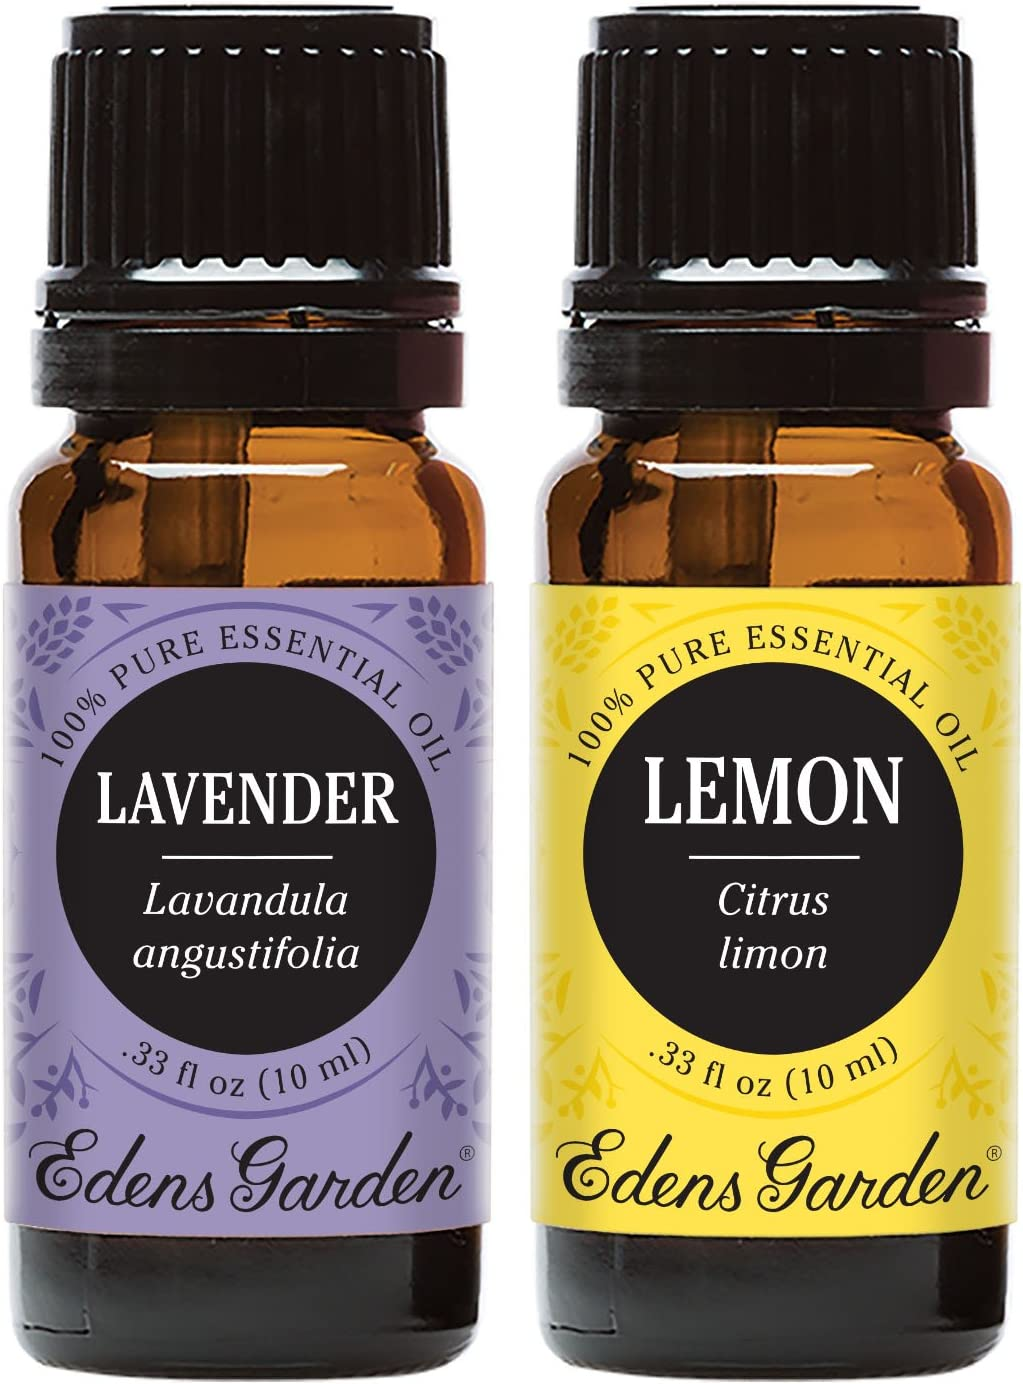 Edens Garden Lavender & Lemon Essential Oil, 100% Pure Therapeutic Grade (Highest Quality Aromatherapy Oils), 10 ml Value Pack